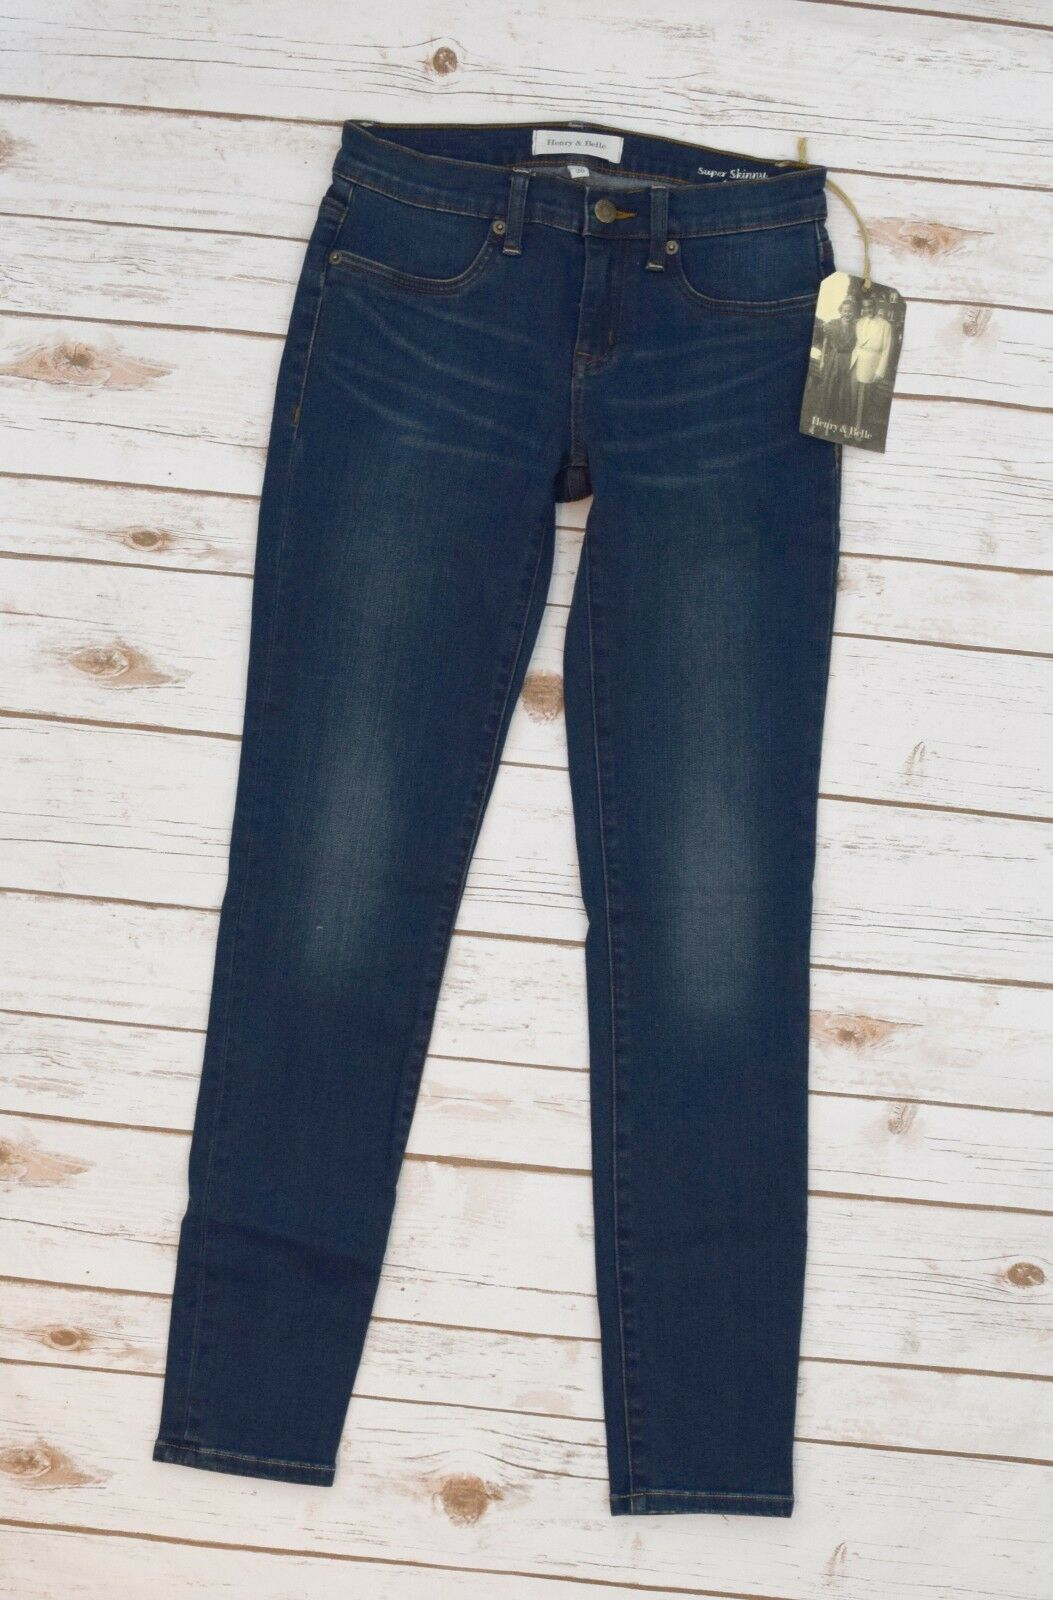 Henry & Belle Super Skinny Jeans Ankle Denim Pants in Rustic Stitch Fix NWT